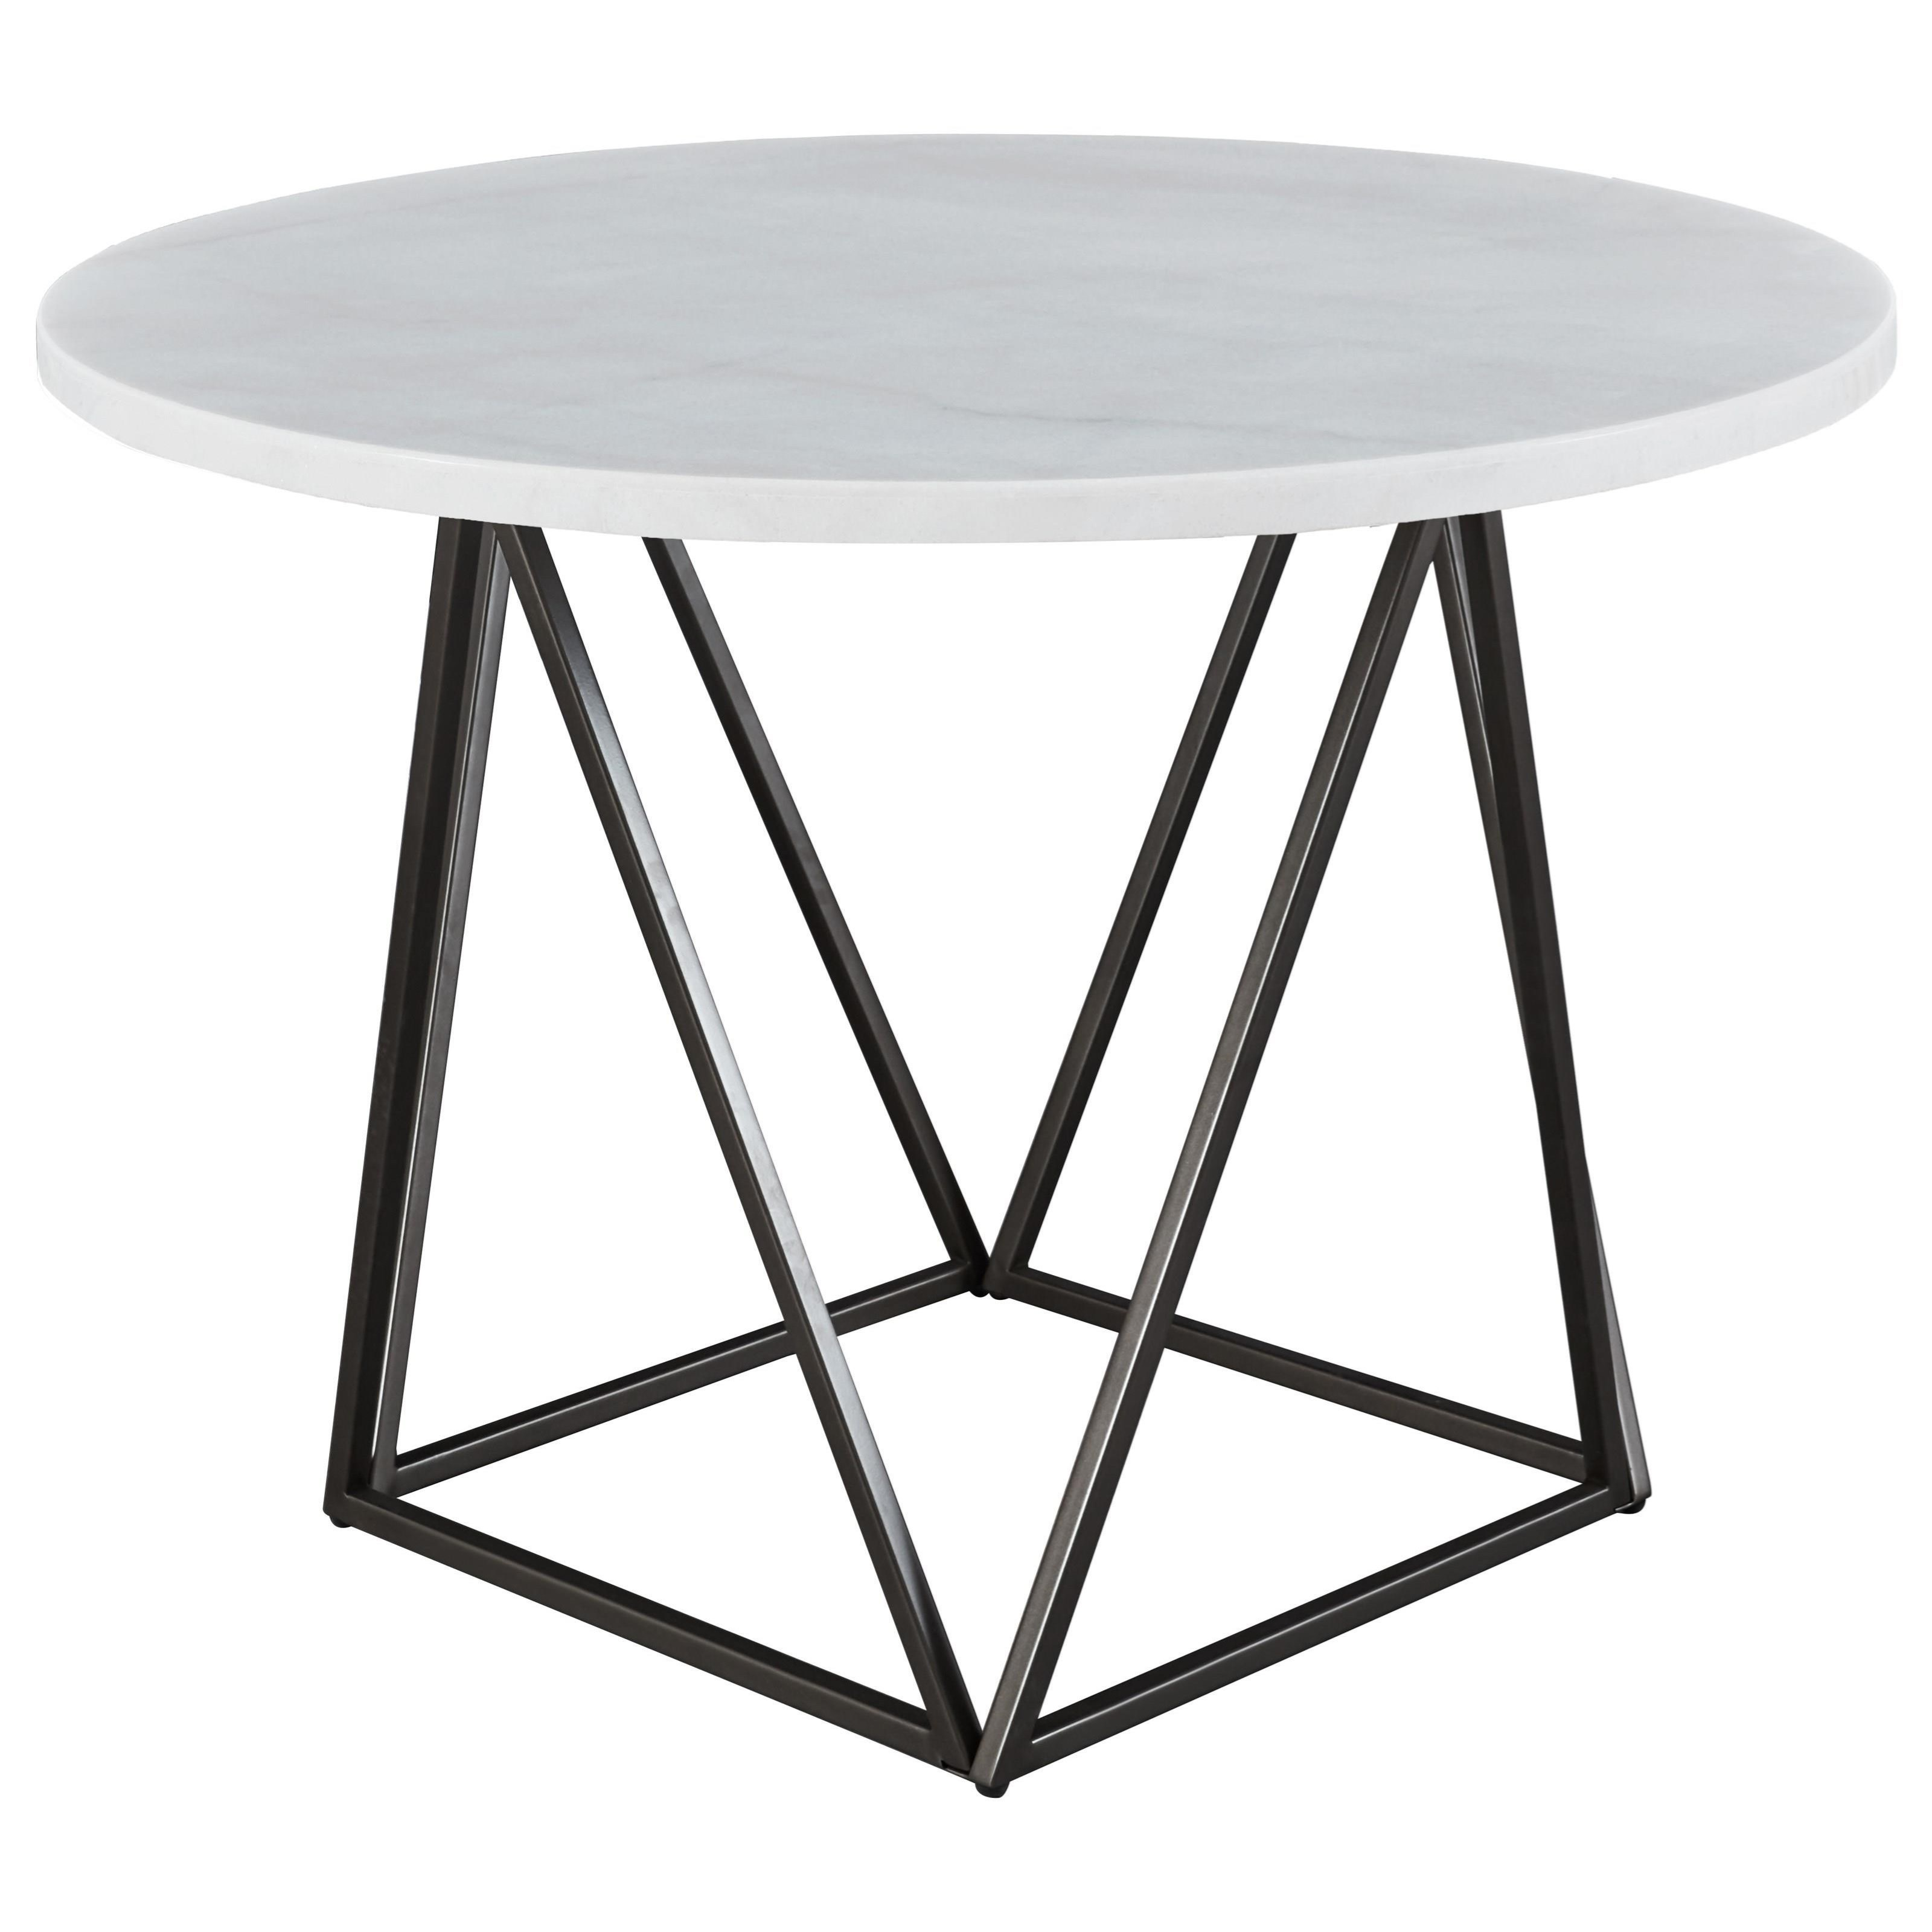 Steve Silver Ramona Rm440wt Contemporary White Marble Top Round Dining Table Northeast Factory Direct Dining Tables